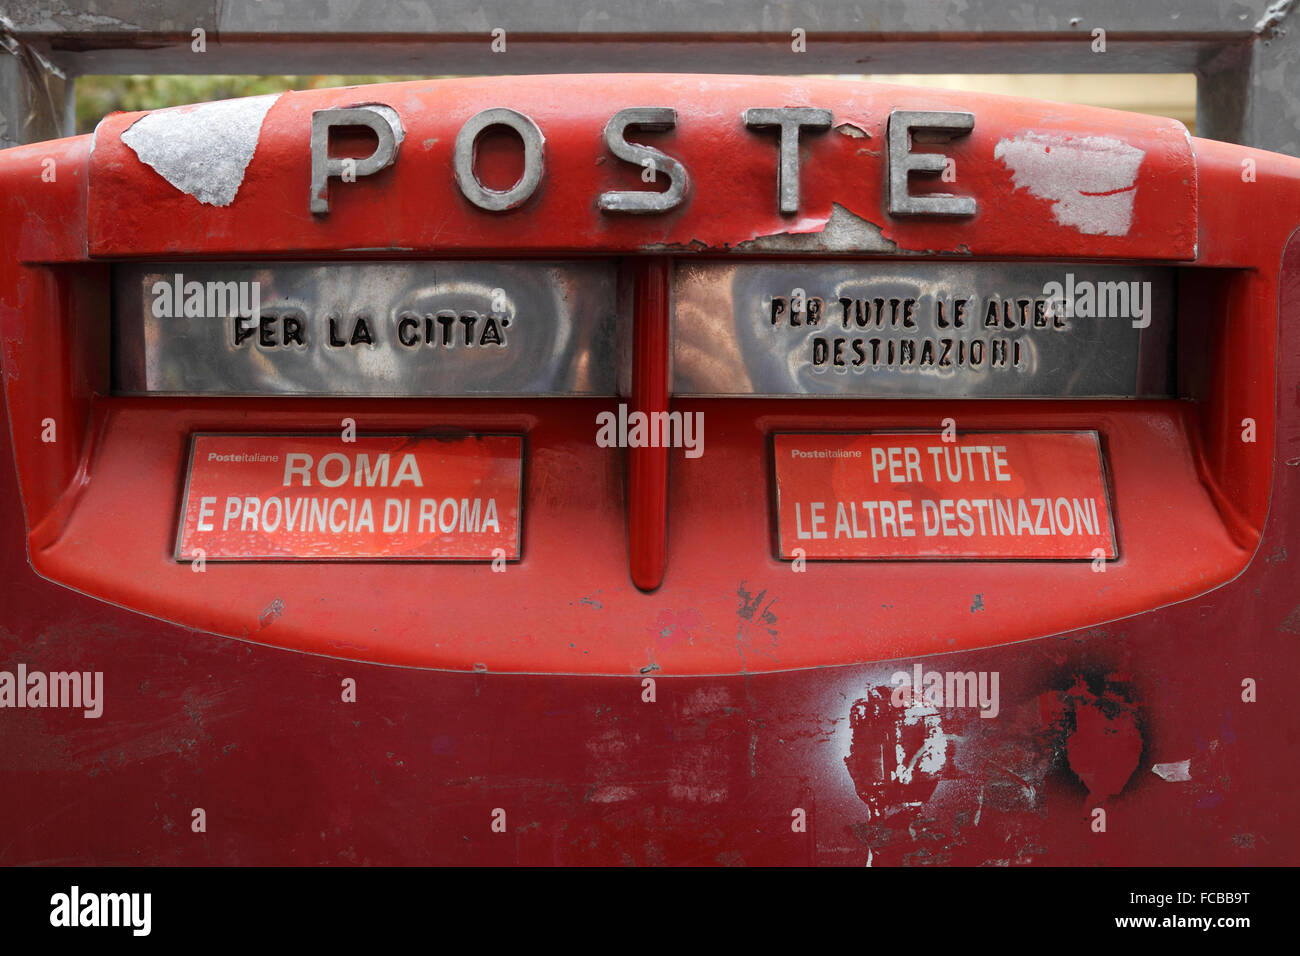 Mailbox in Rome - Stock Image